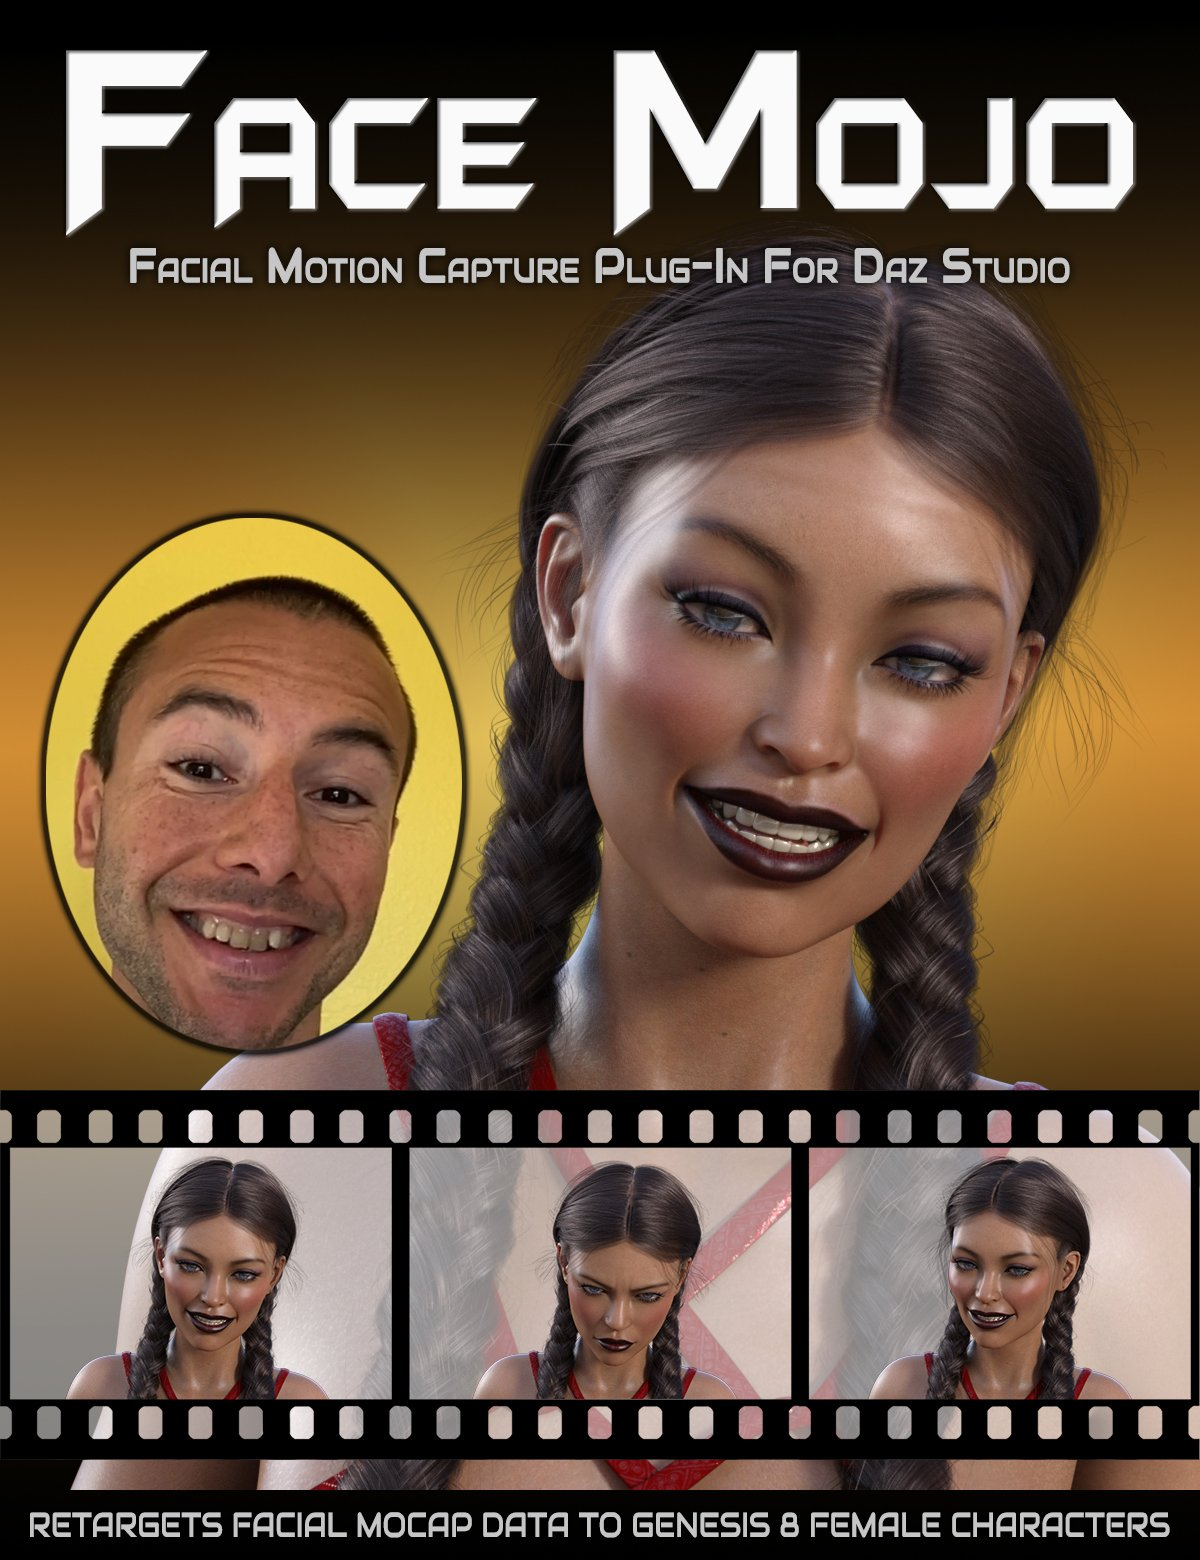 Face Mojo - Facial MoCap Retargeting for Genesis 8 Females by: LayLo 3D, 3D Models by Daz 3D